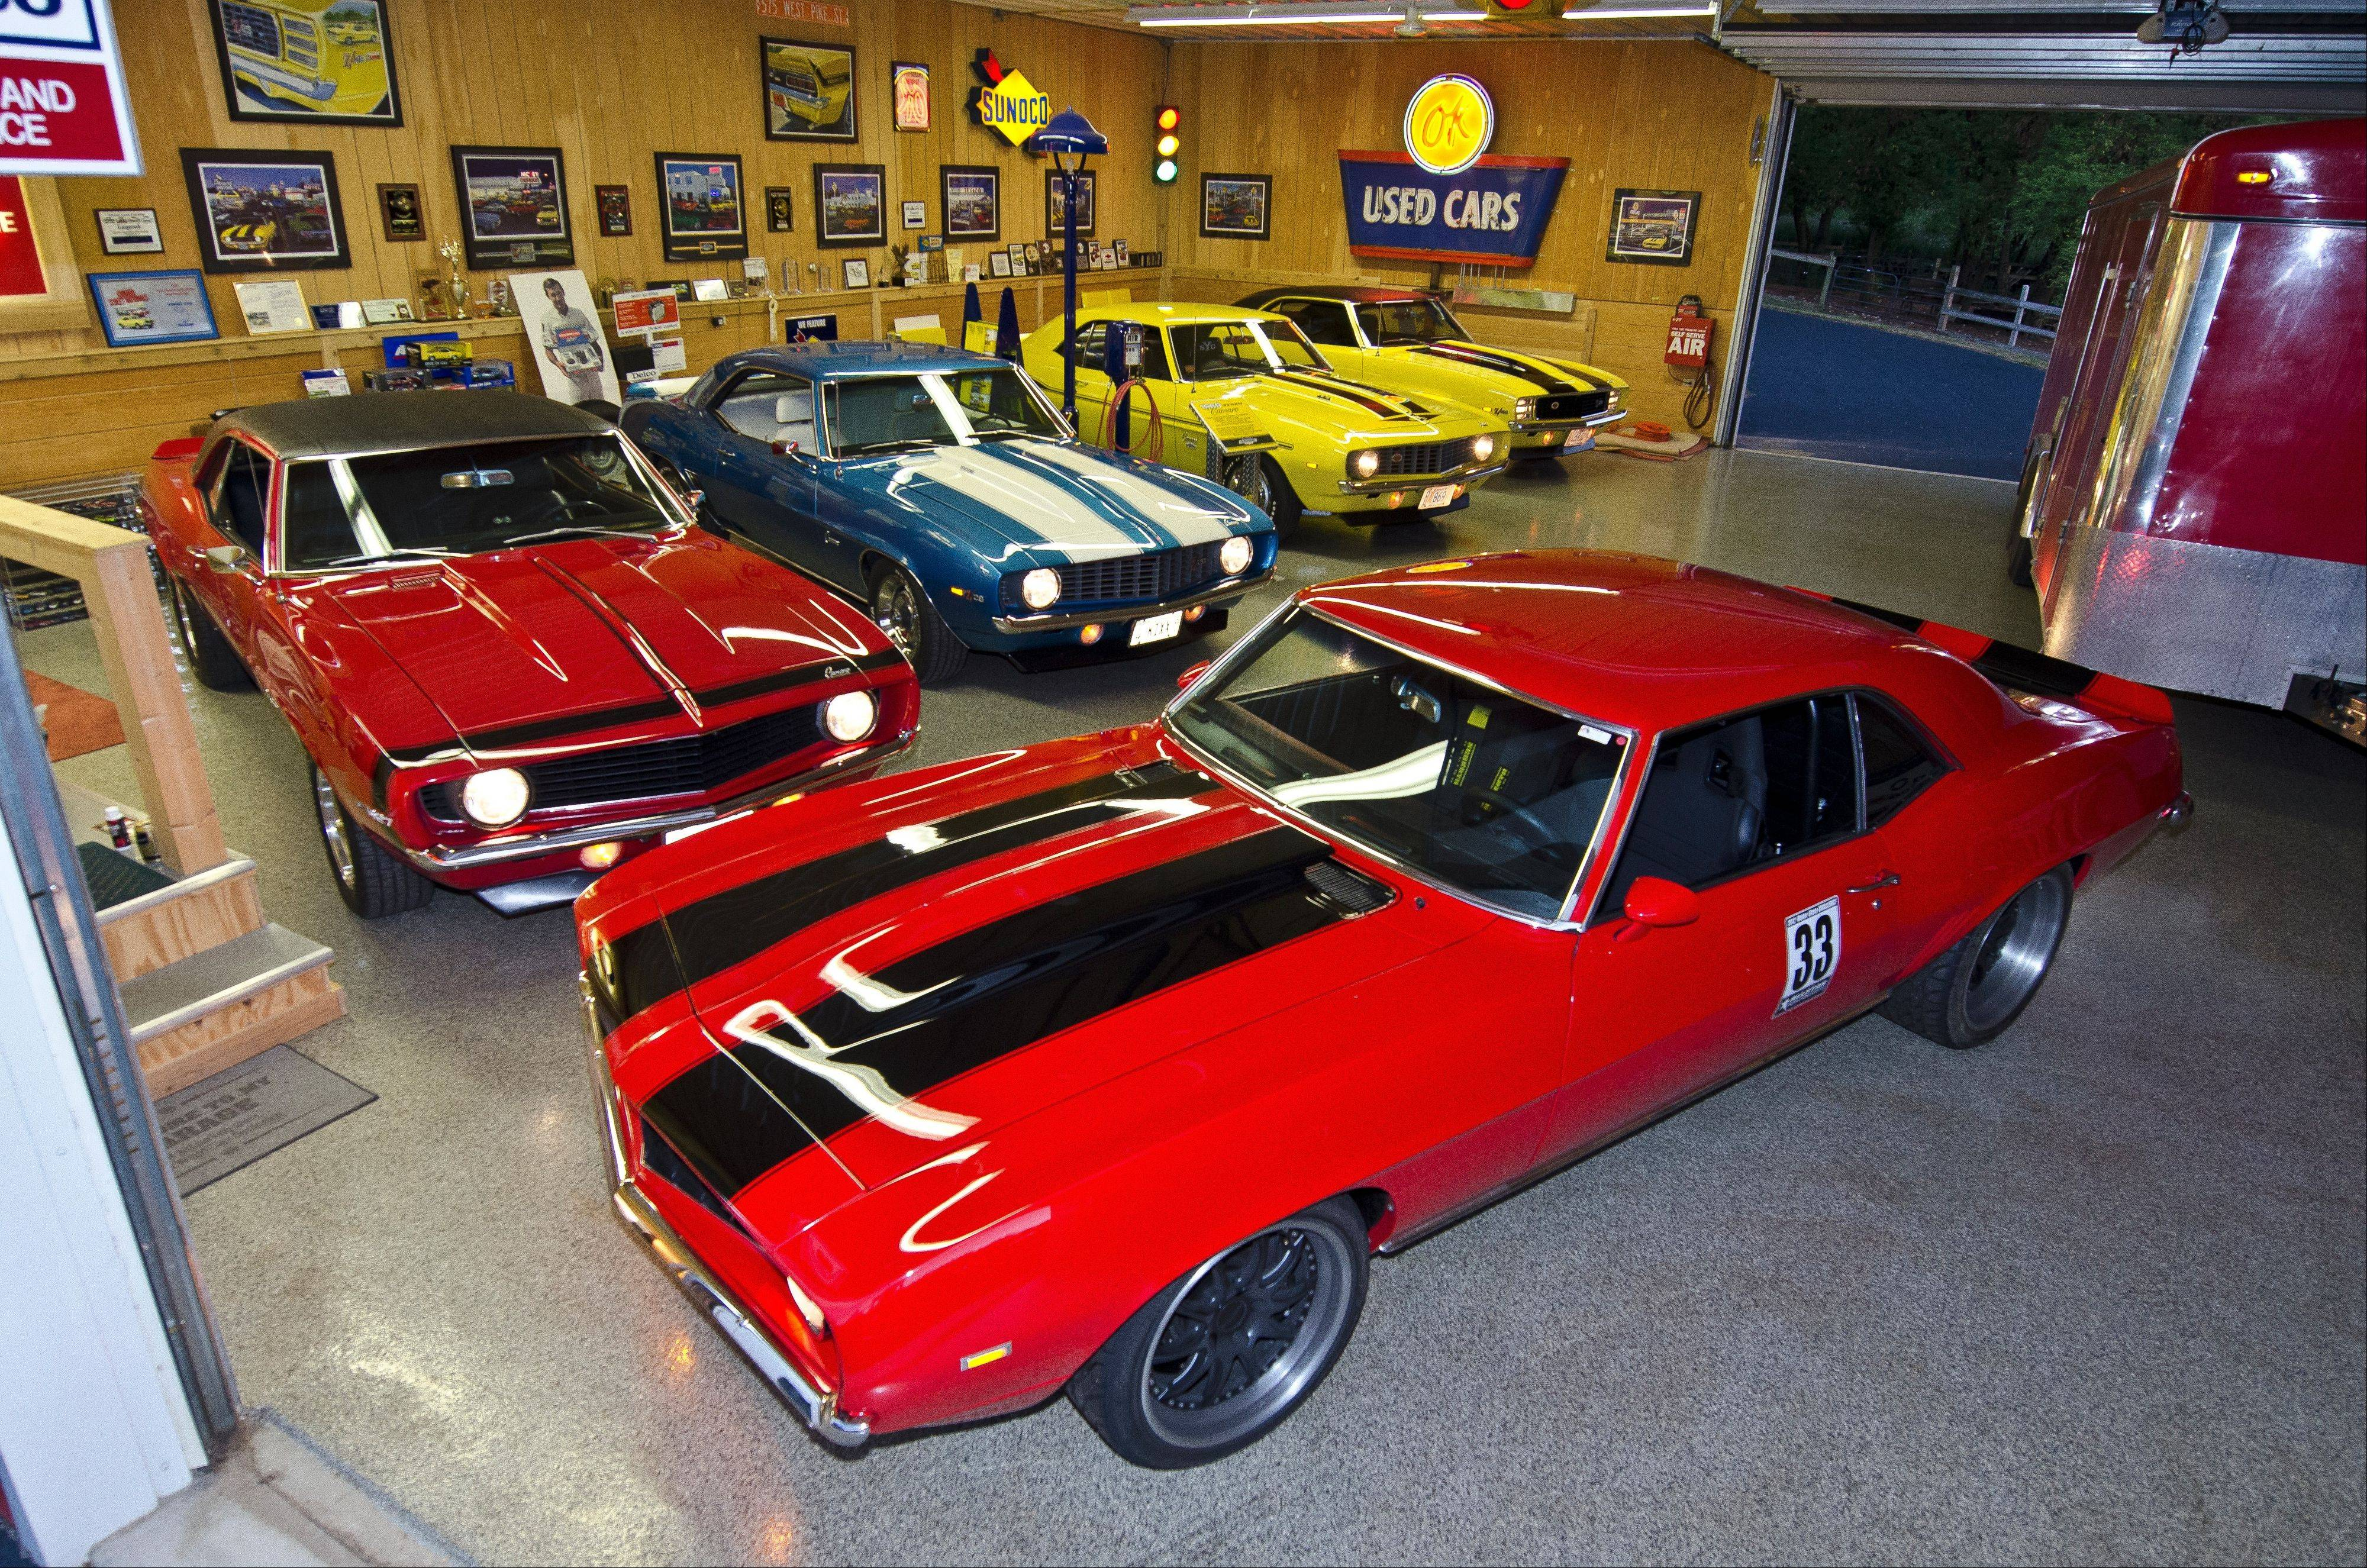 The 1969 Camaro collection of Rich Gregory, Barrington.